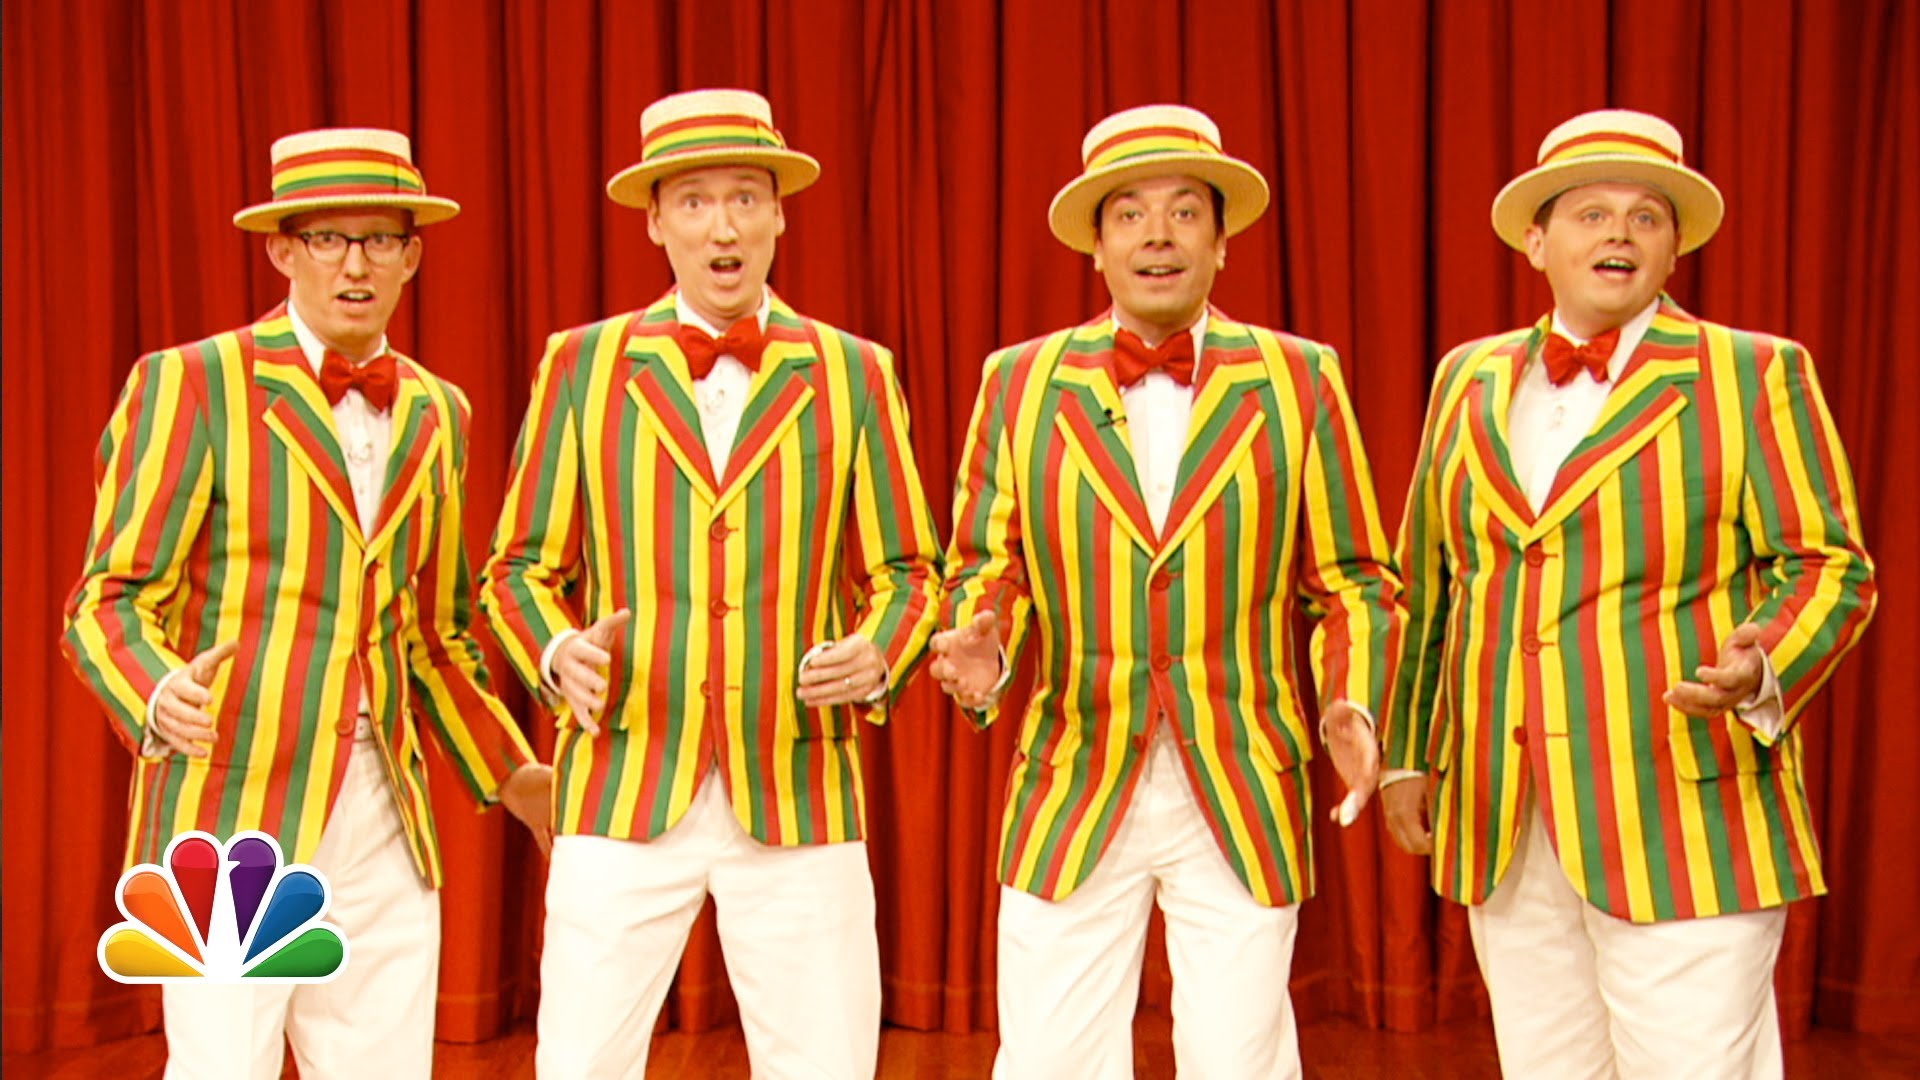 Jimmy Fallon and his Barbershop Quartet